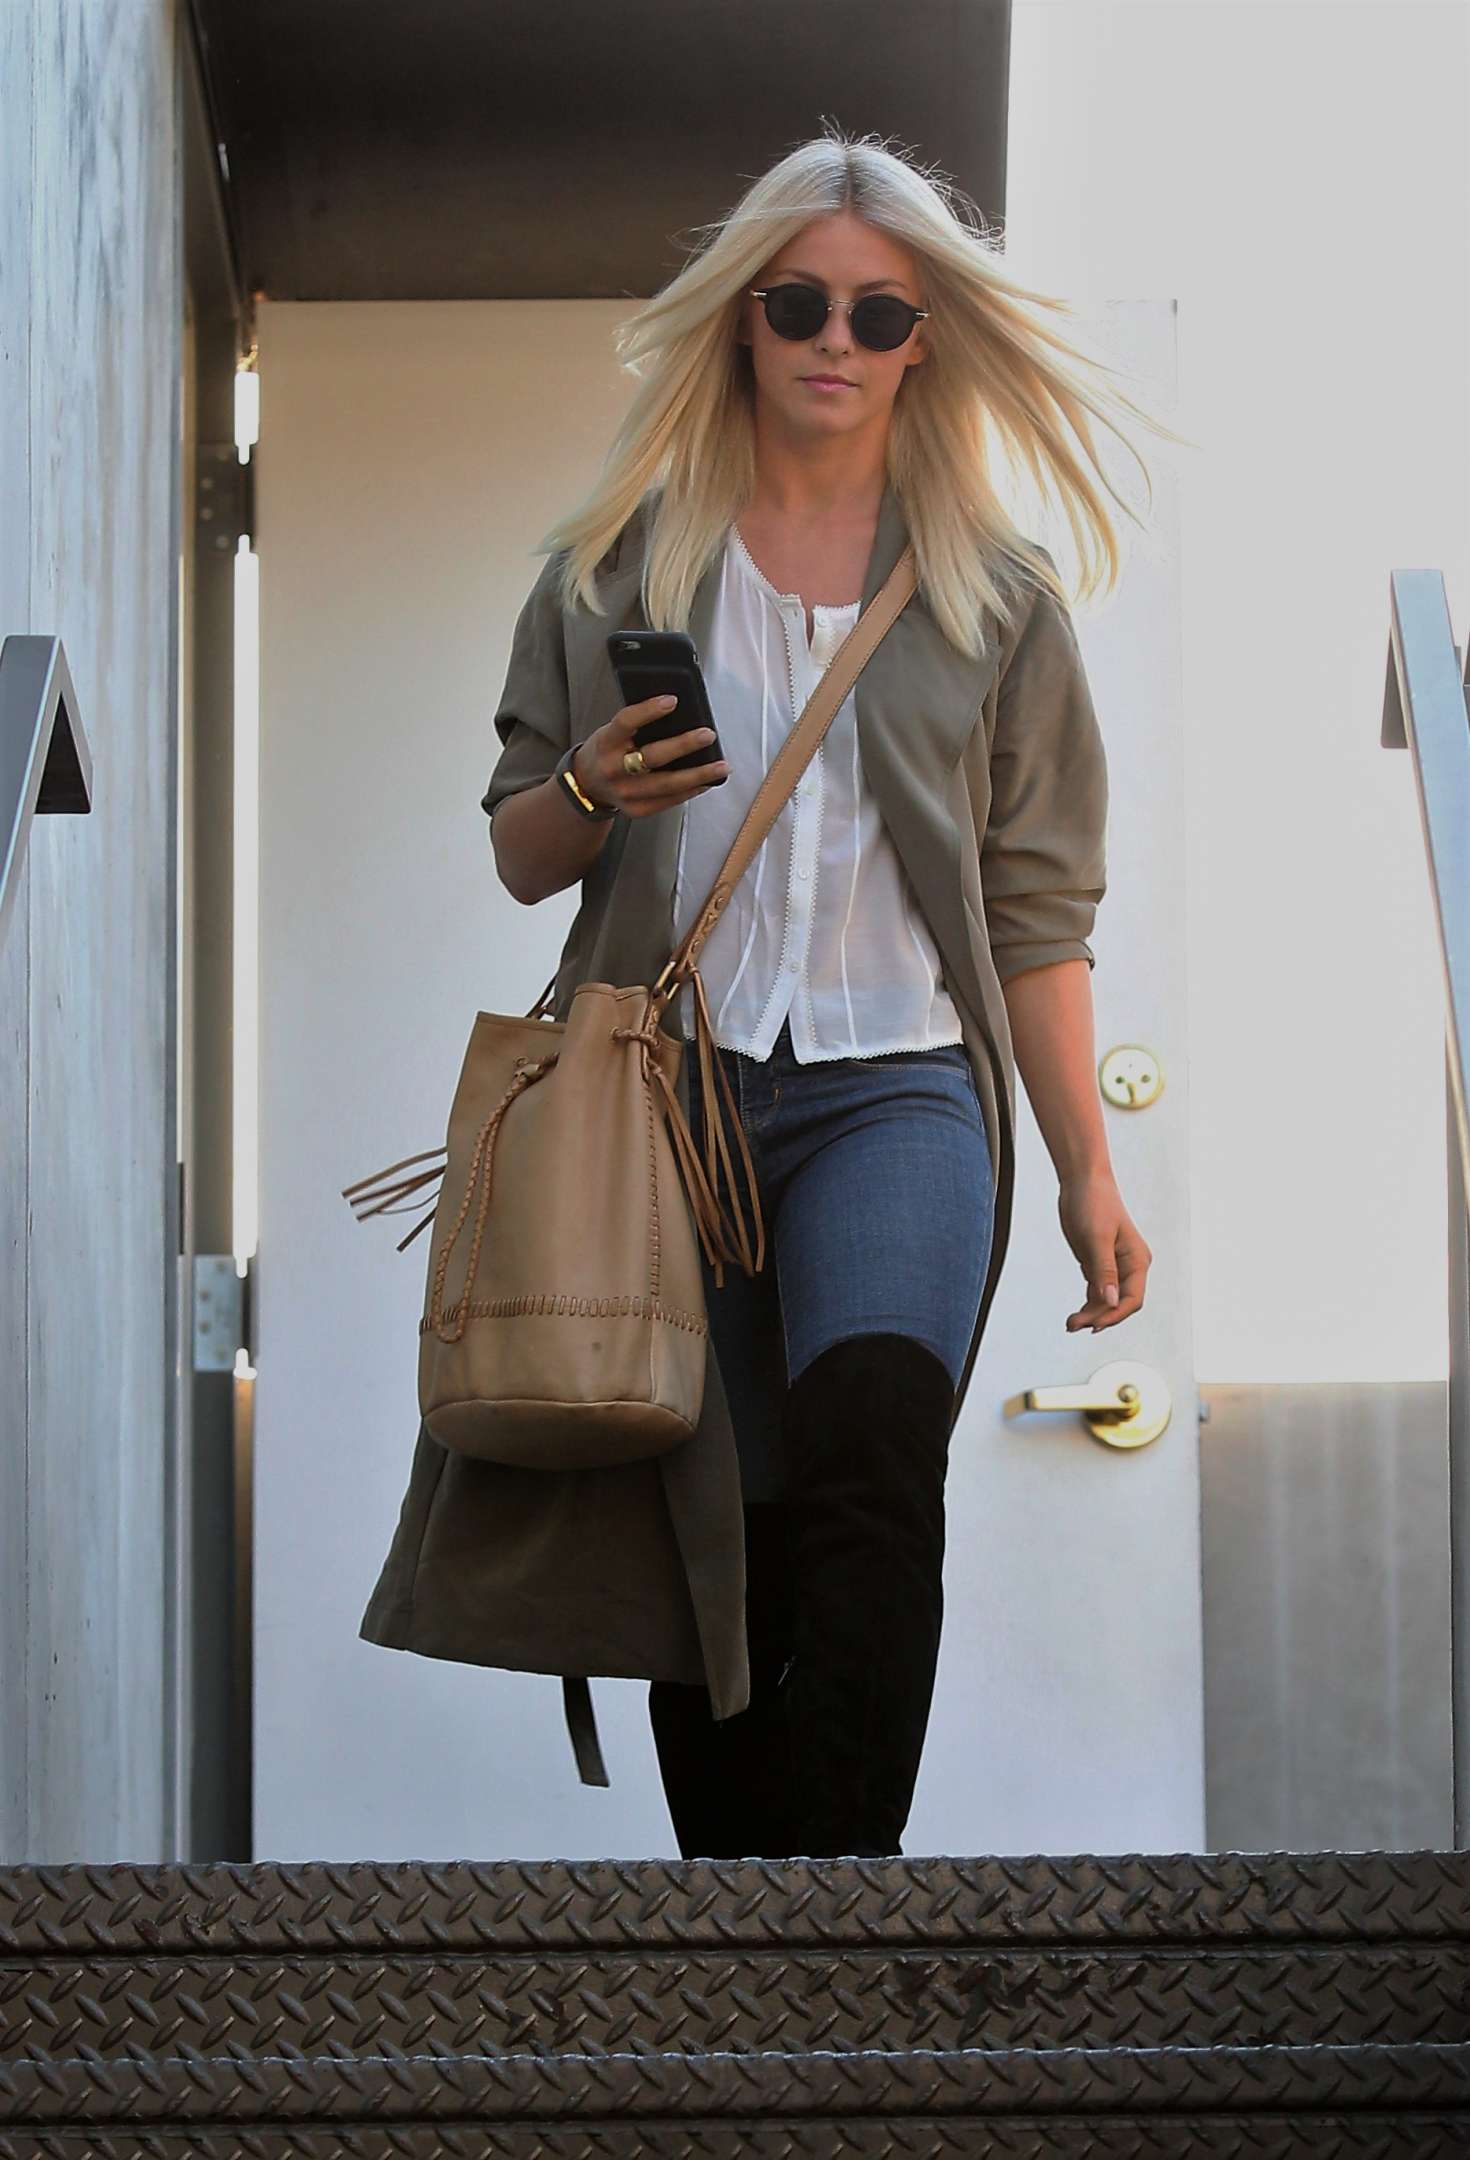 Julianne hough leaving at 901 hair salon 05 gotceleb for 901 salon west hollywood